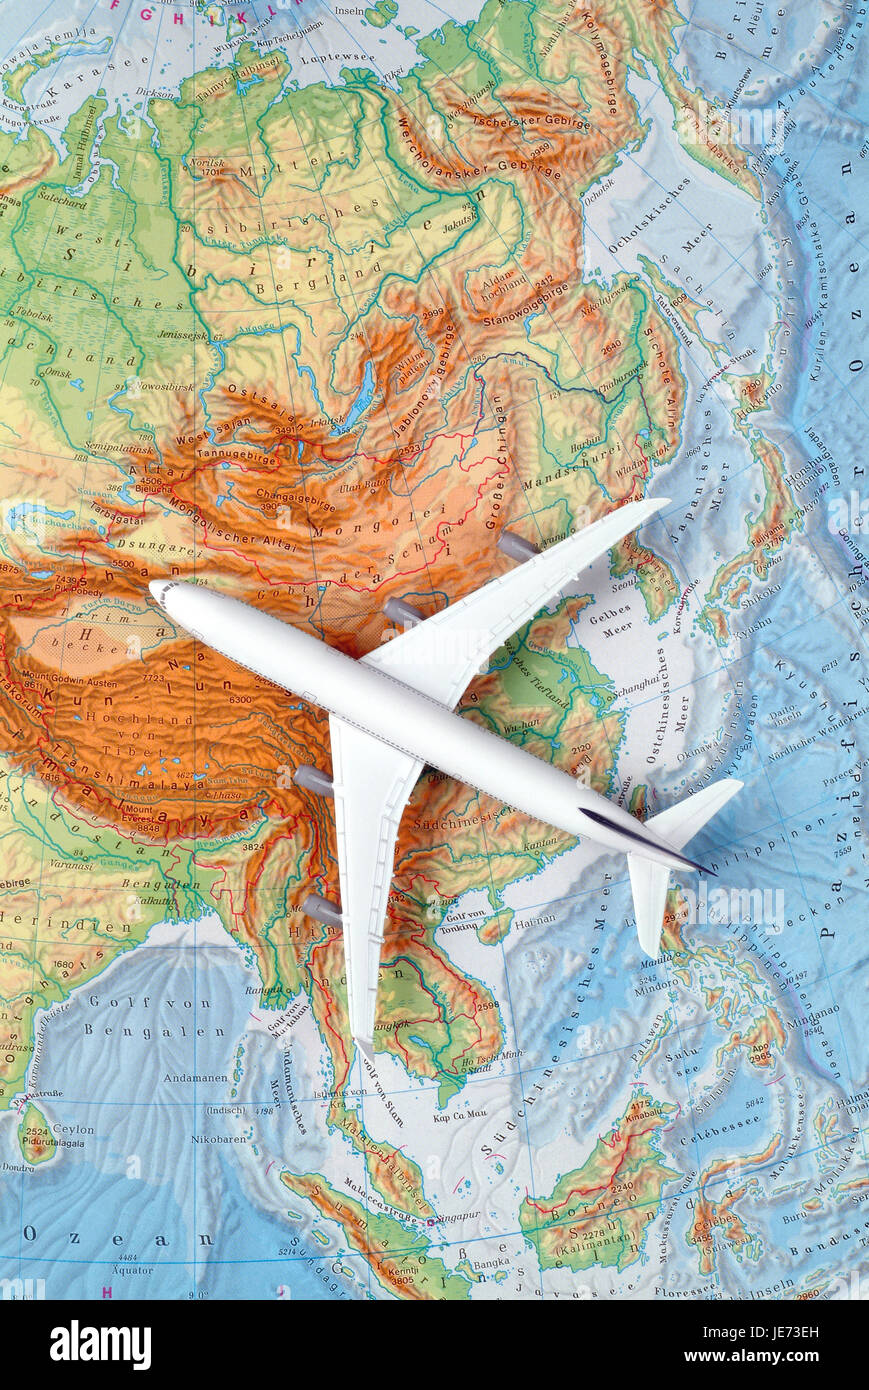 Airplane on a map of Asia, China, Japan, Korea, Stock Photo